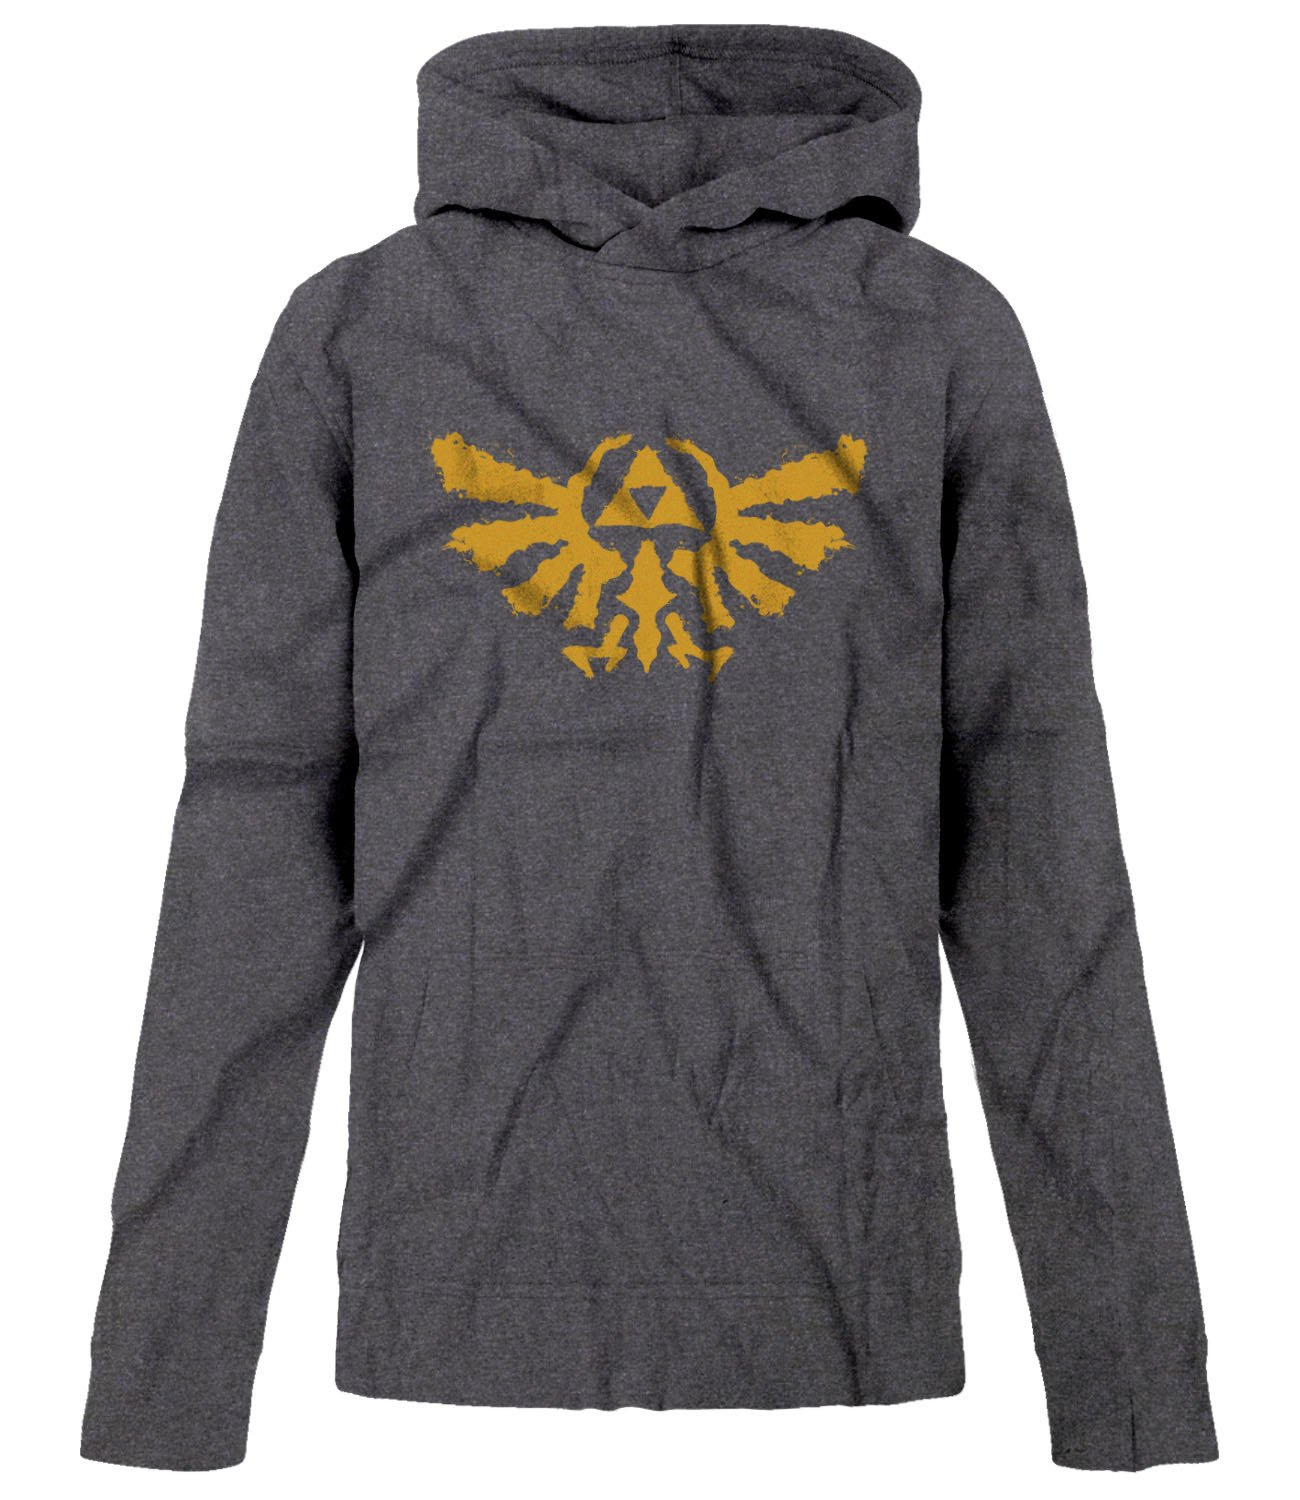 BSW Youth Boys Rorschach Zelda Triforce The Golden Power Hoodie 1246-1HPY